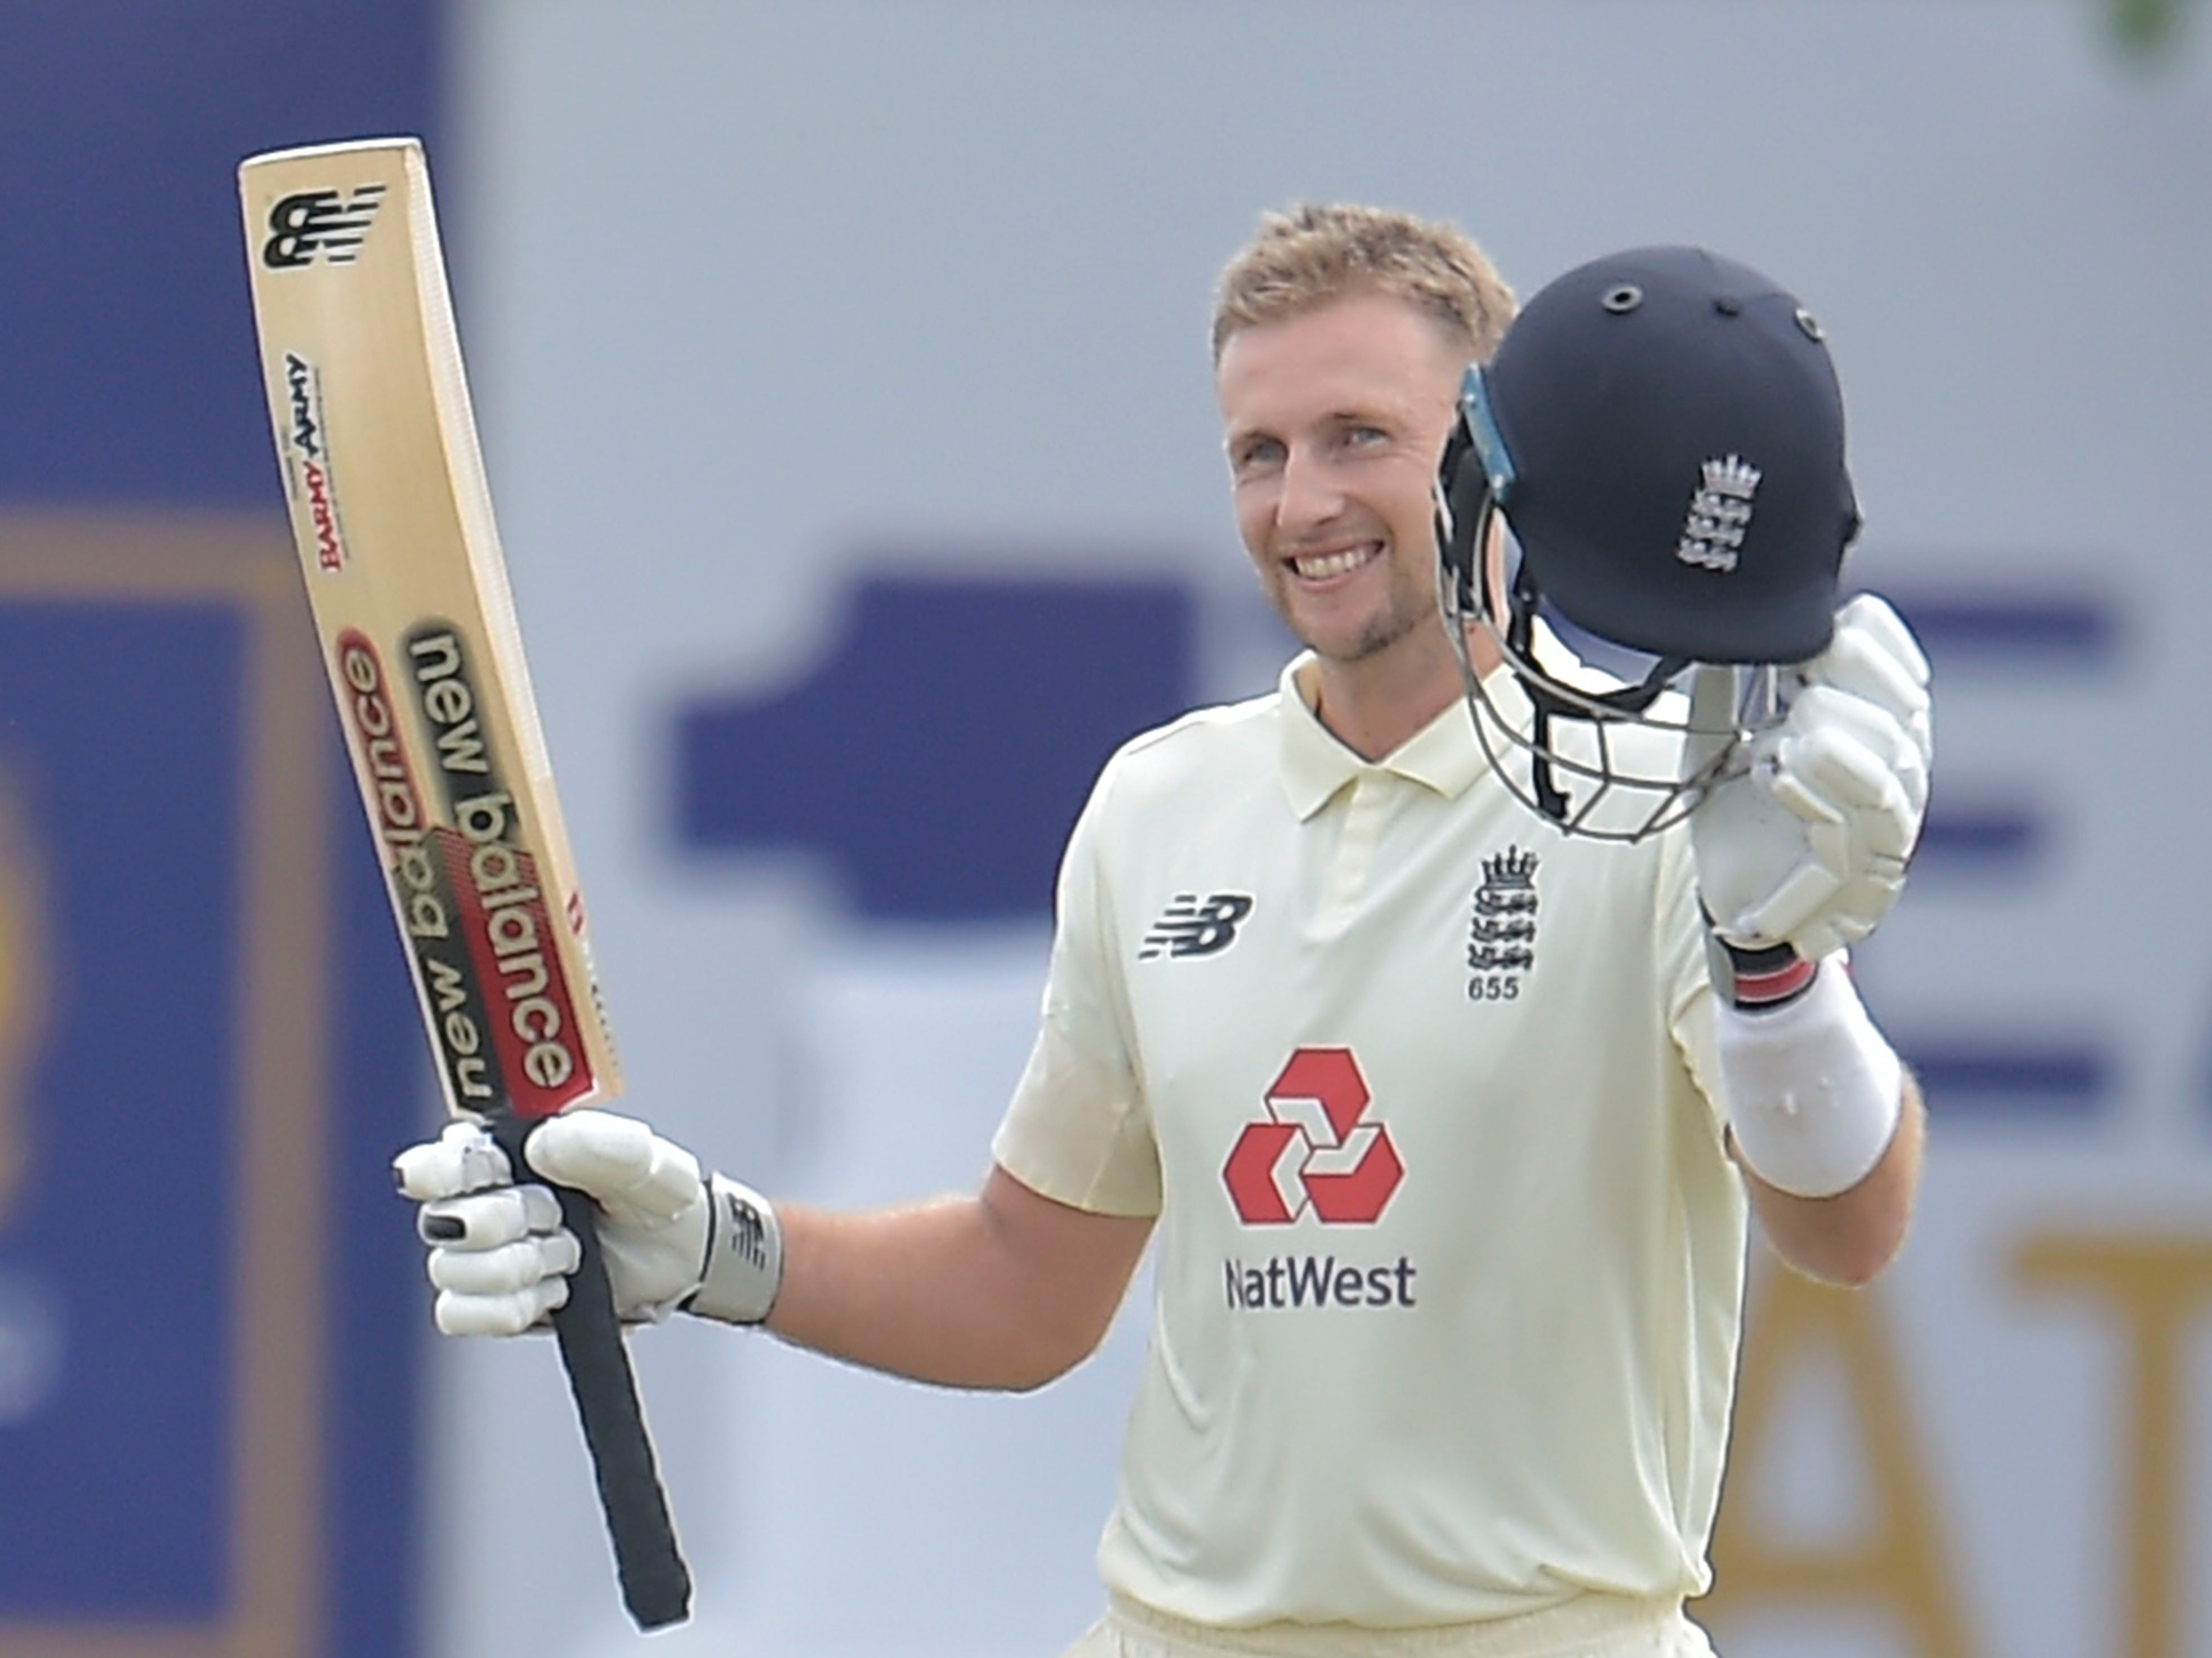 Joe Root embraces his selfish side to bat England into total control